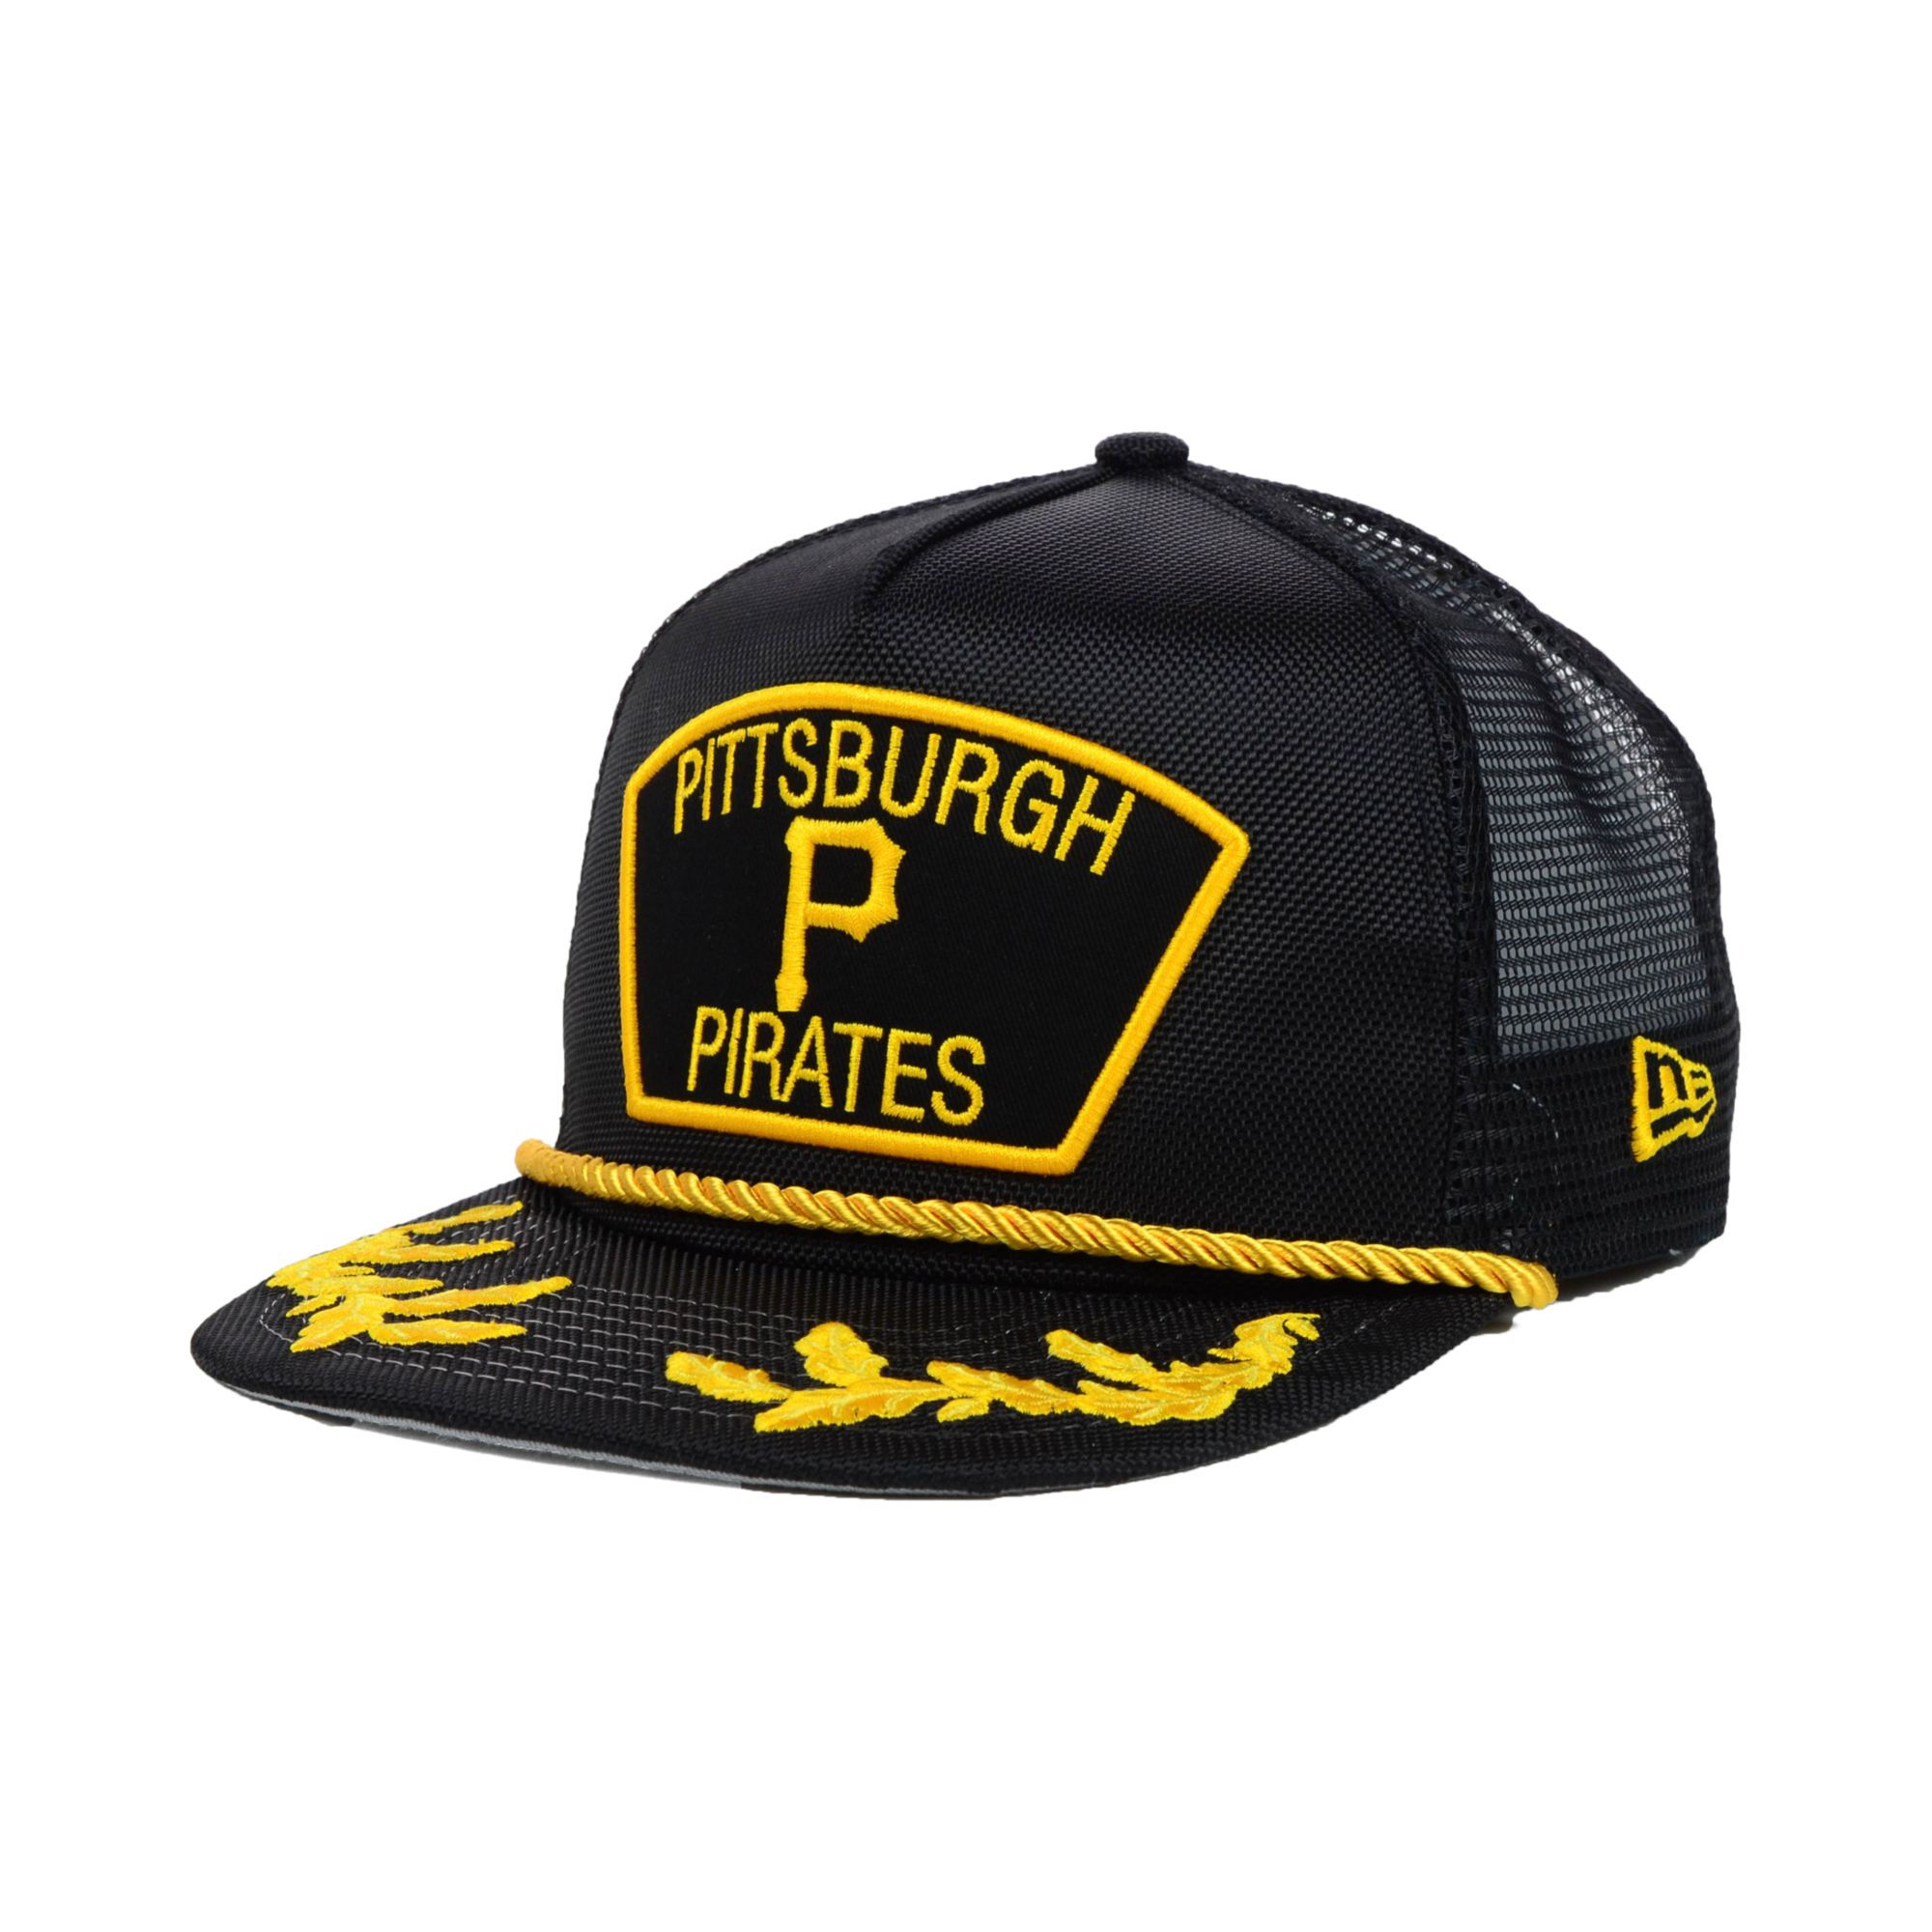 9913f704fe6 Lyst - KTZ Pittsburgh Pirates Mlb 9fifty Snapback Cap in Black for Men